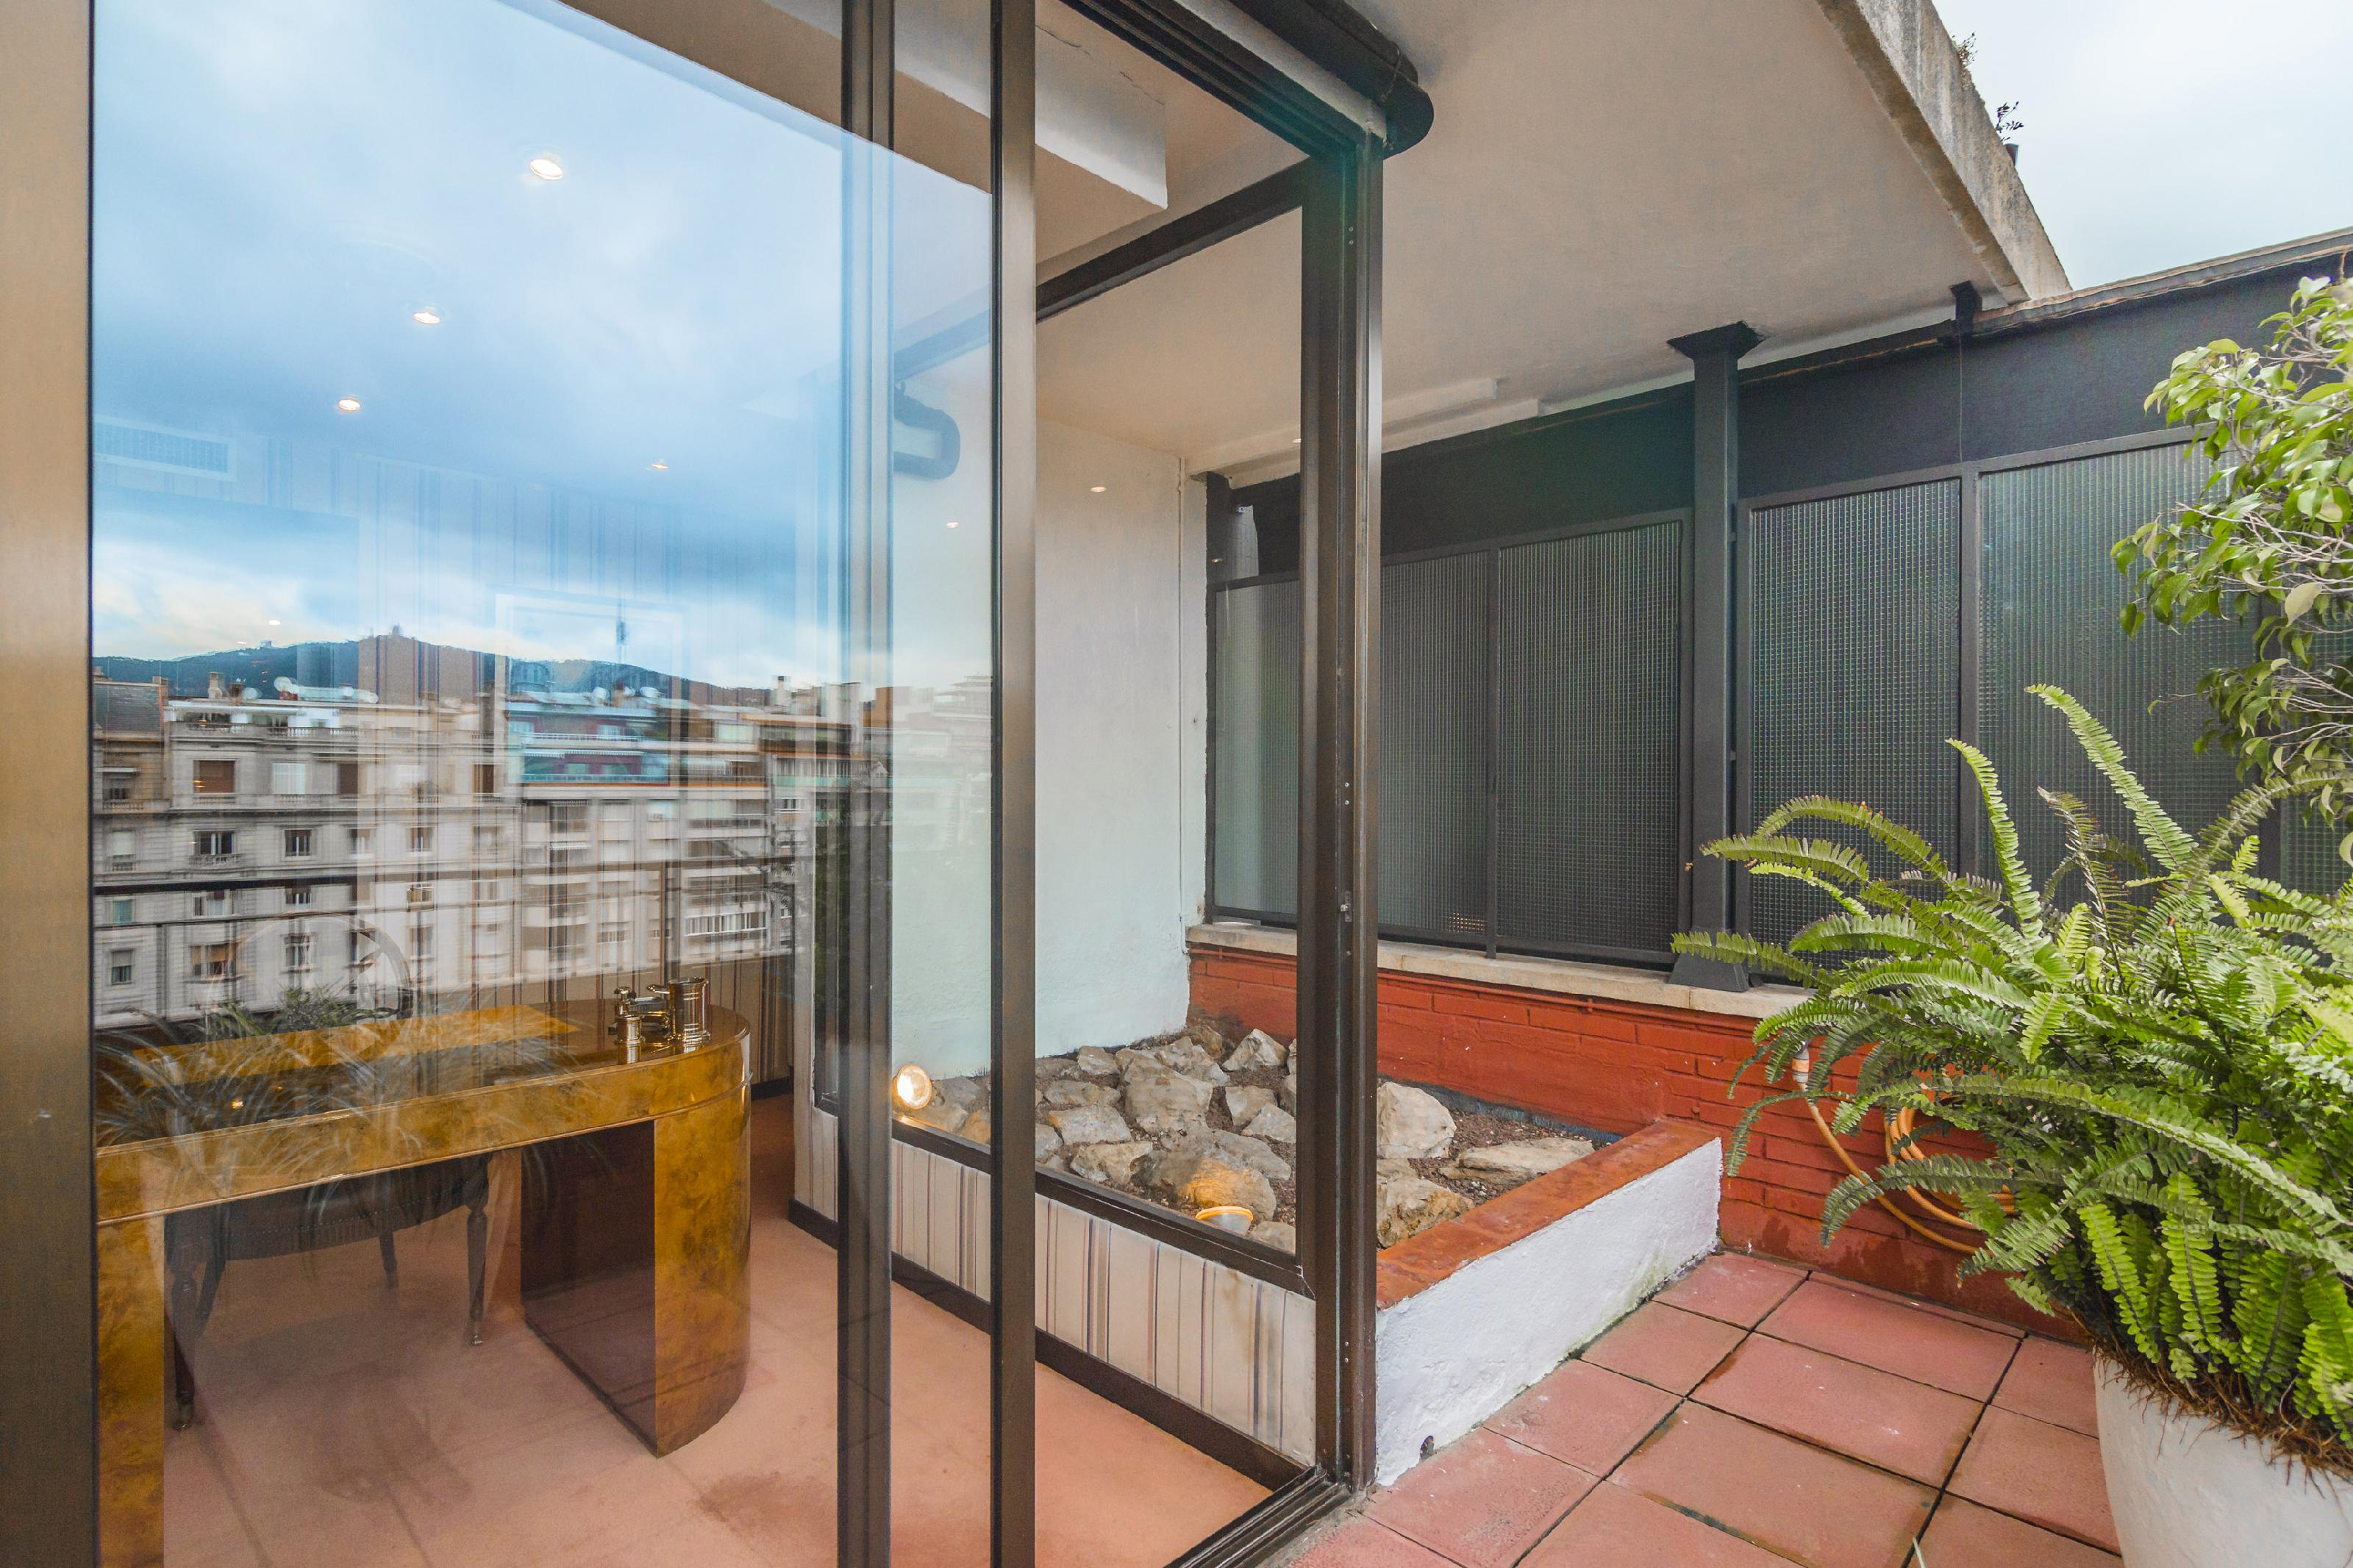 223855 Penthouse for sale in Sarrià-Sant Gervasi, Sant Gervasi-Galvany 13